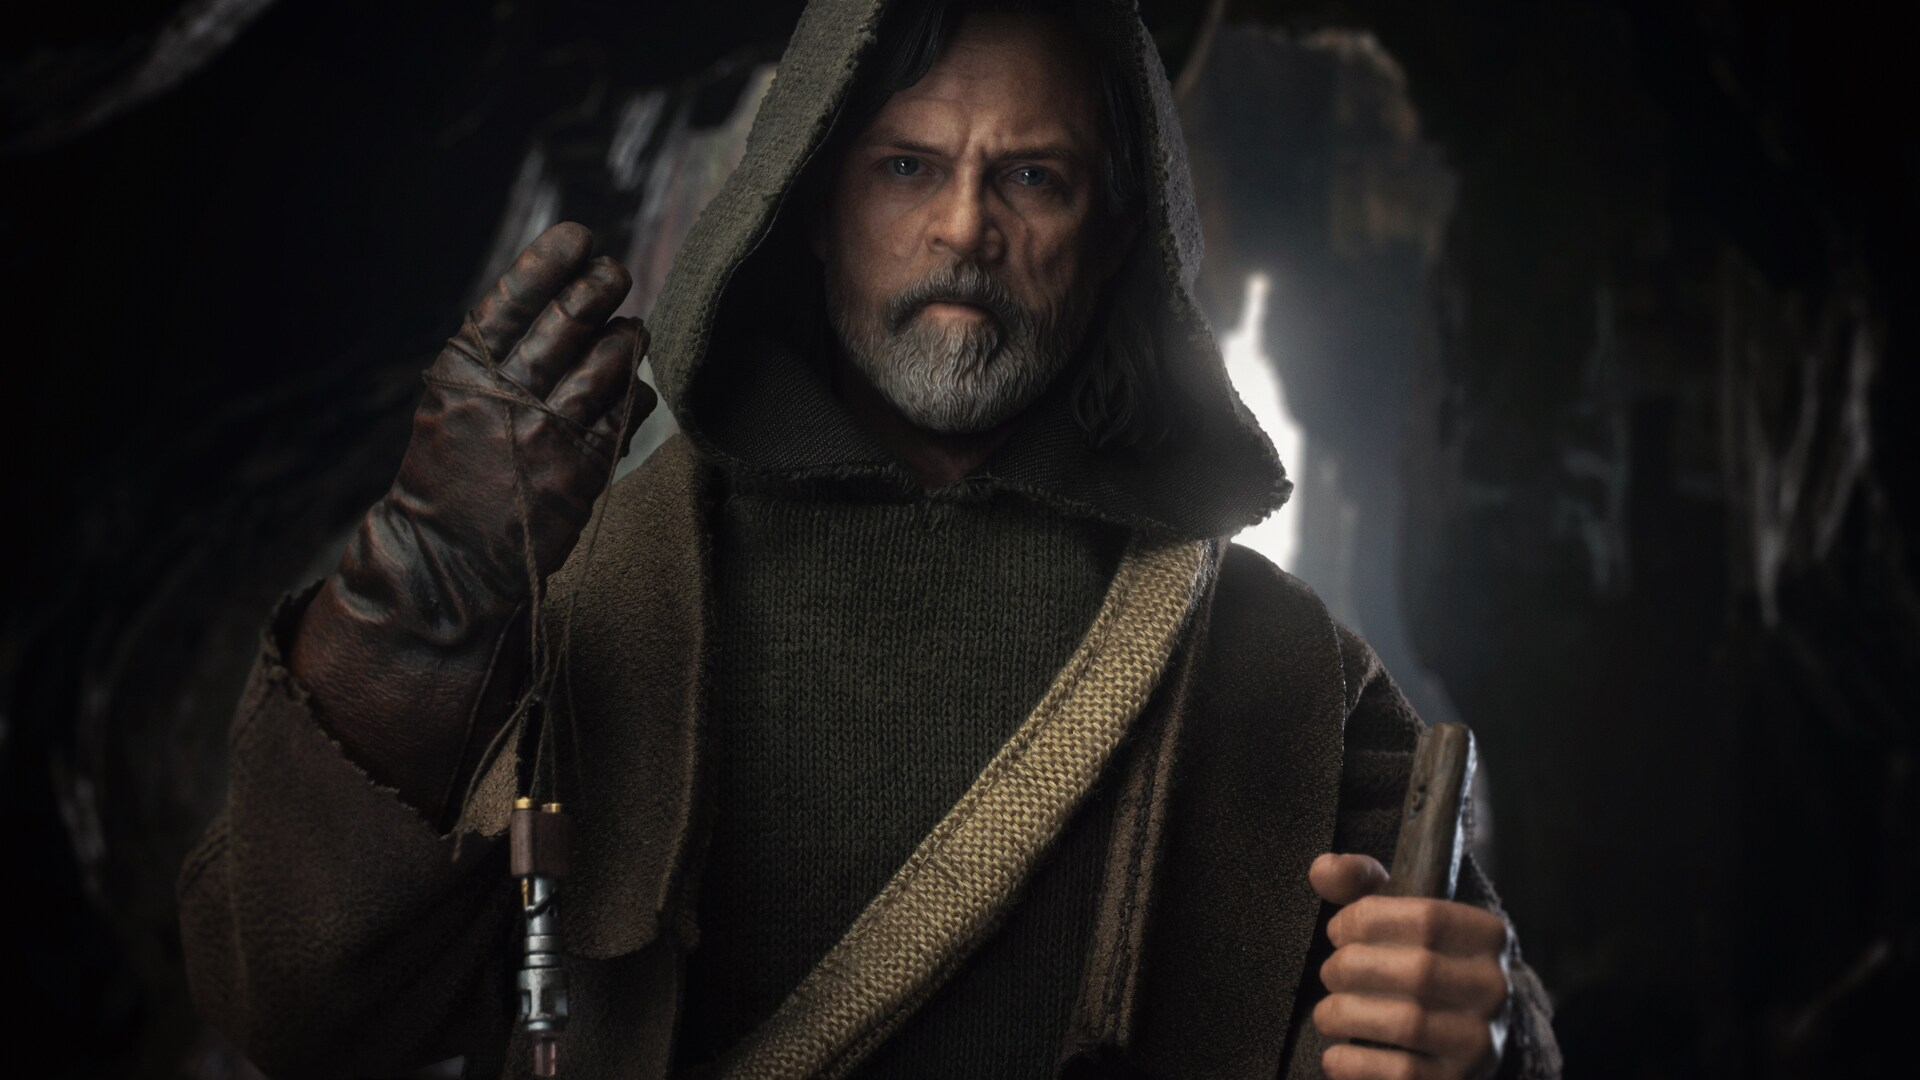 1920x1080 Master Luke Skywalker Laptop Full Hd 1080p Hd 4k Wallpapers Images Backgrounds Photos And Pictures